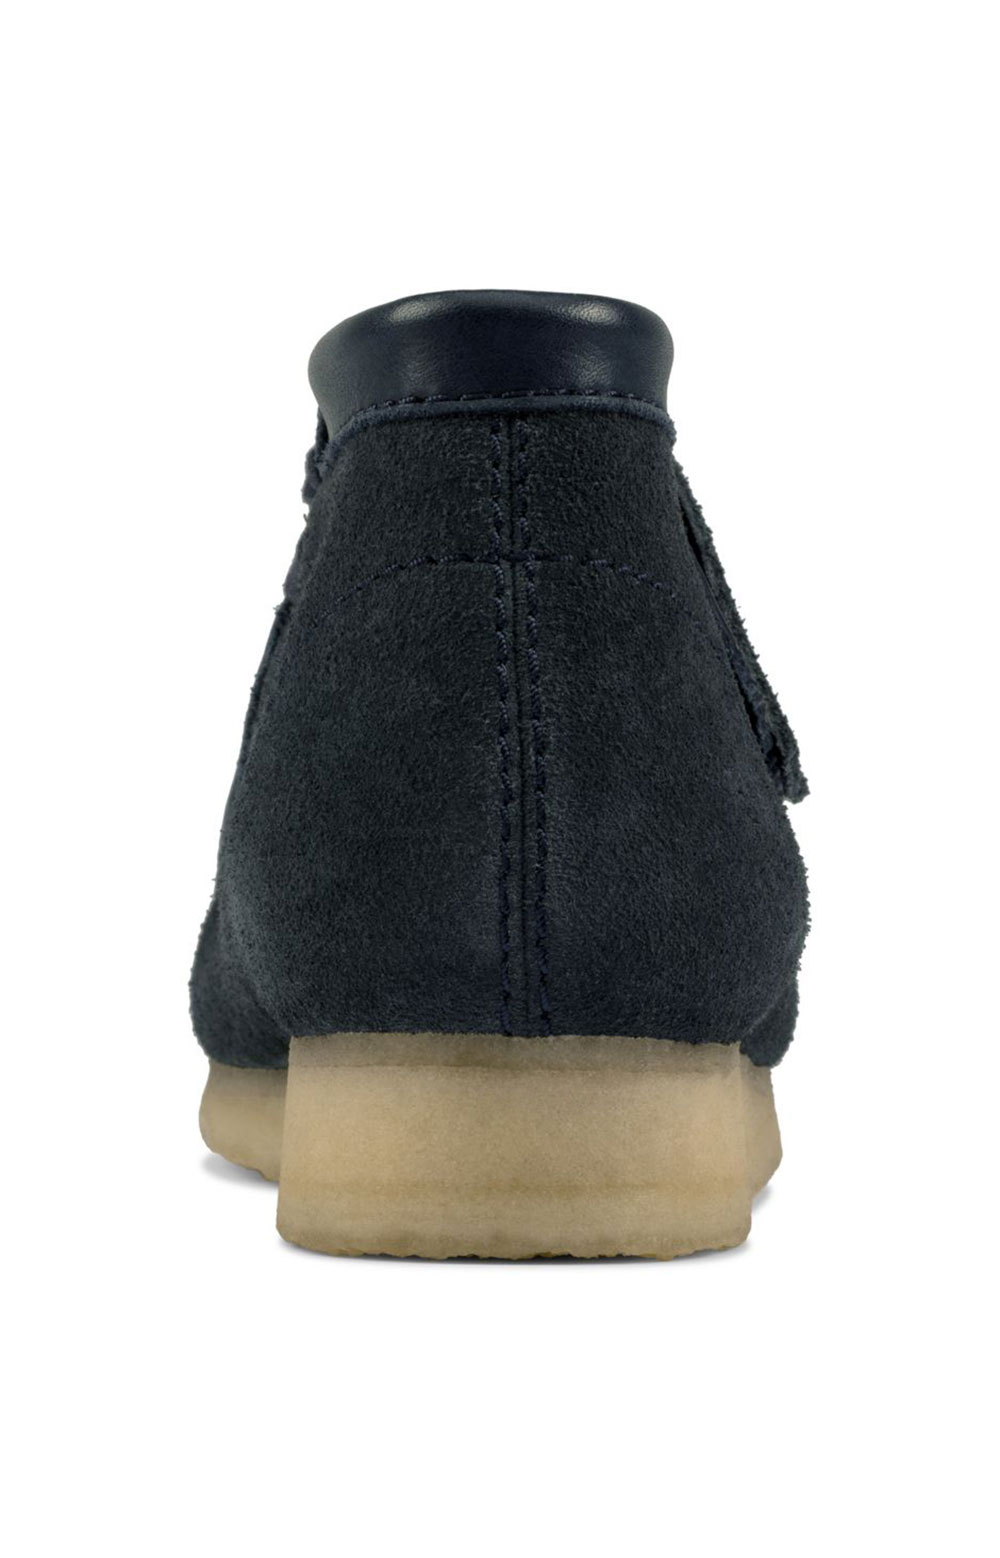 (26155048) Wallabee Boots - Navy Hairy Suede  6